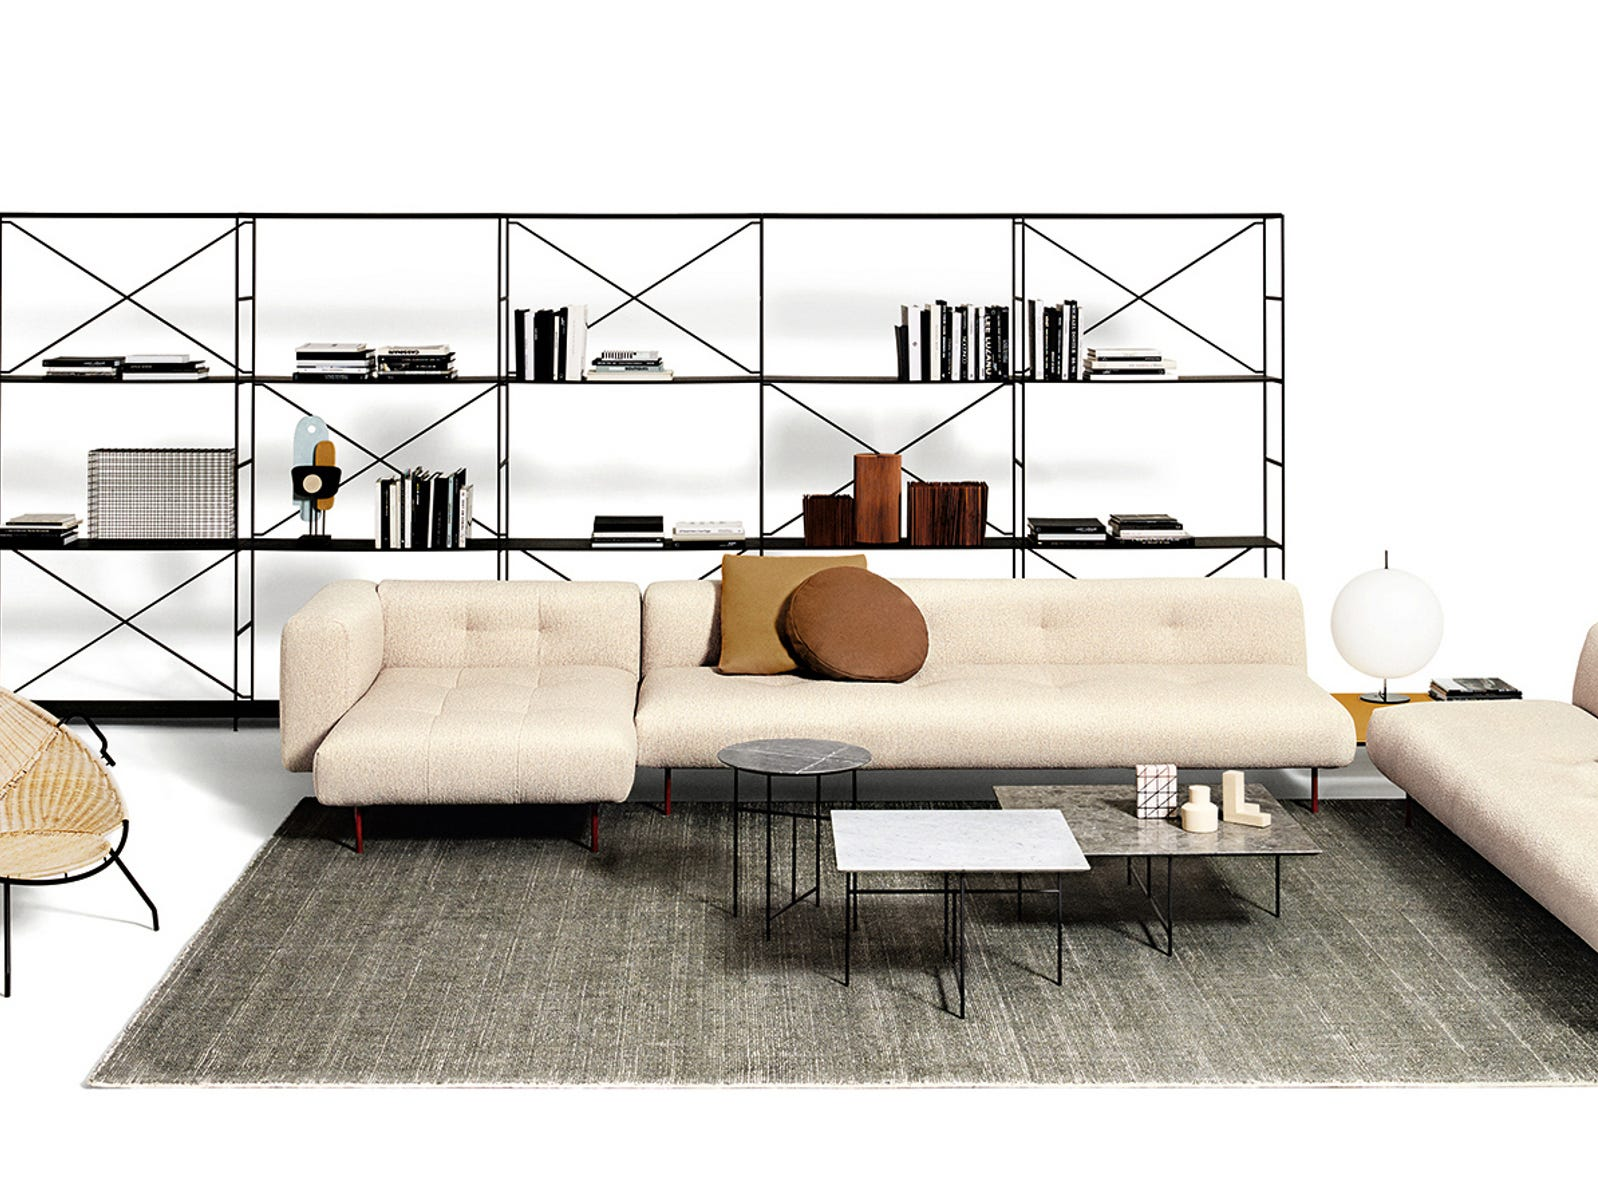 Storage needs have evolved in living spaces, and this solution from De Padova strikes a simple architectural chord. The flexible system is available in satin or matte black anodized aluminum or matte white painted aluminum. The versatile Universal Shelving system works in the living room, home office or as a wardrobe in a master bedroom suite. Modules with sliding doors are ideal for home bars and entertainment systems.